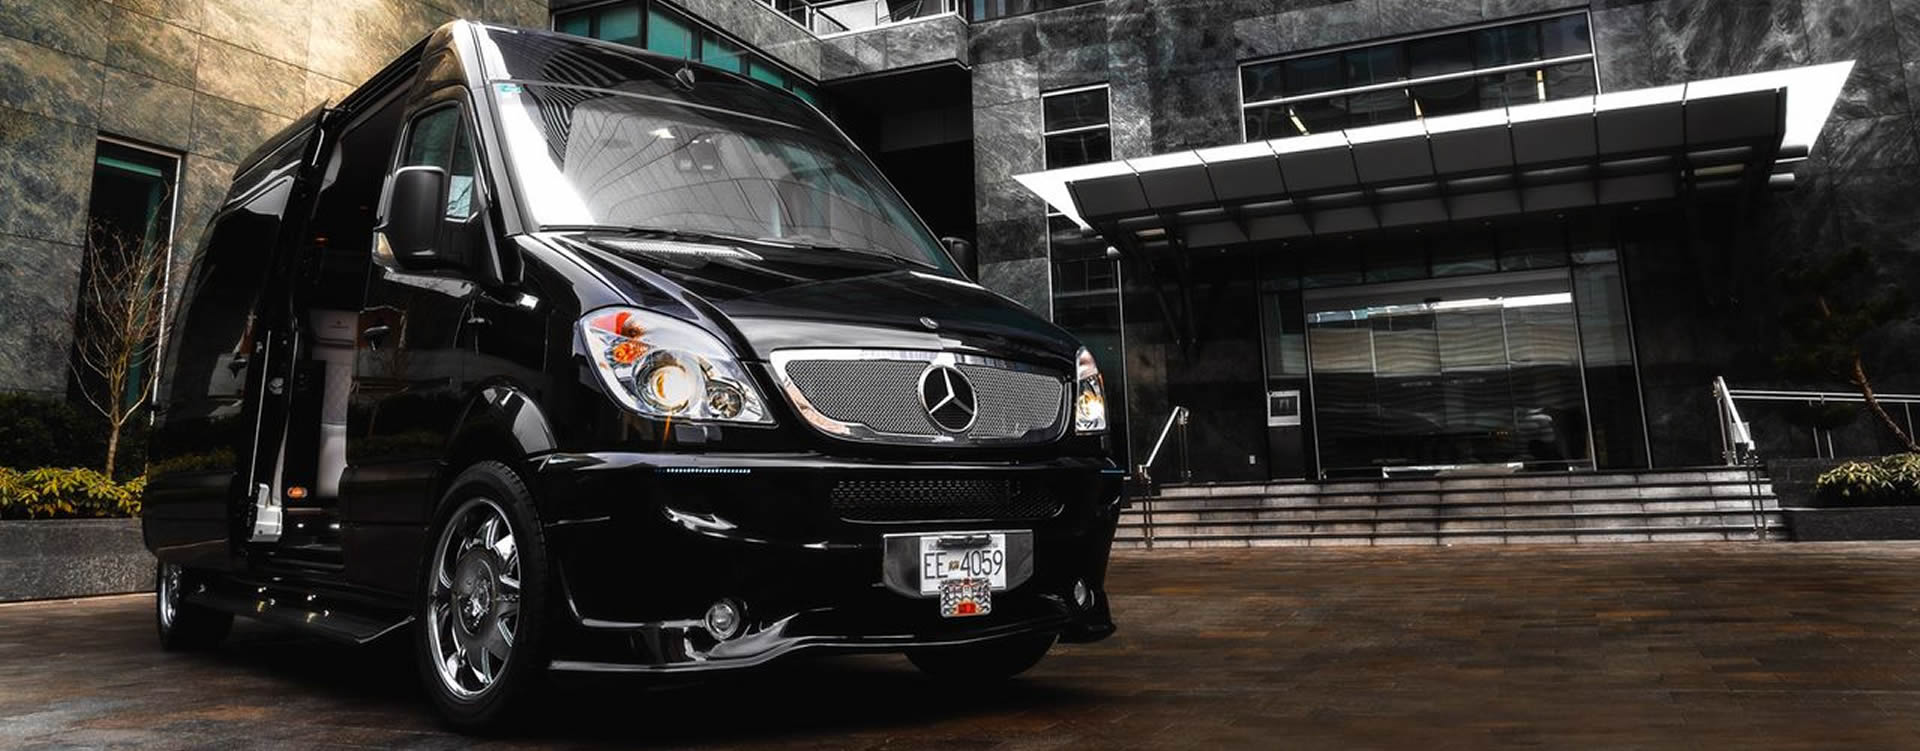 limobook-vancouver-luxury-transportation-service-mercedes-executive-van-07.jpg